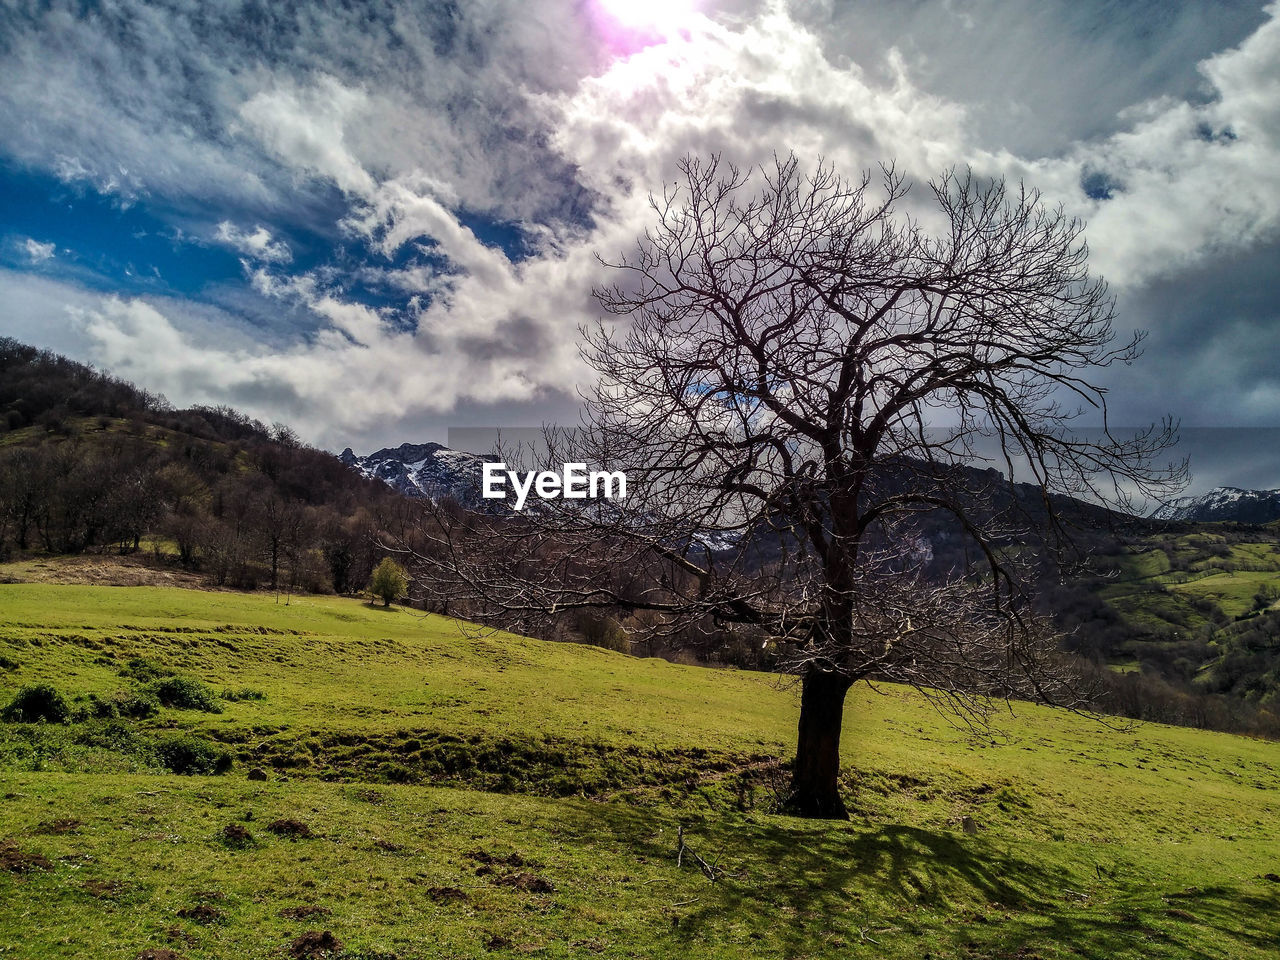 sky, cloud - sky, tree, plant, beauty in nature, environment, tranquil scene, tranquility, landscape, scenics - nature, nature, no people, land, non-urban scene, bare tree, field, grass, day, branch, outdoors, isolated